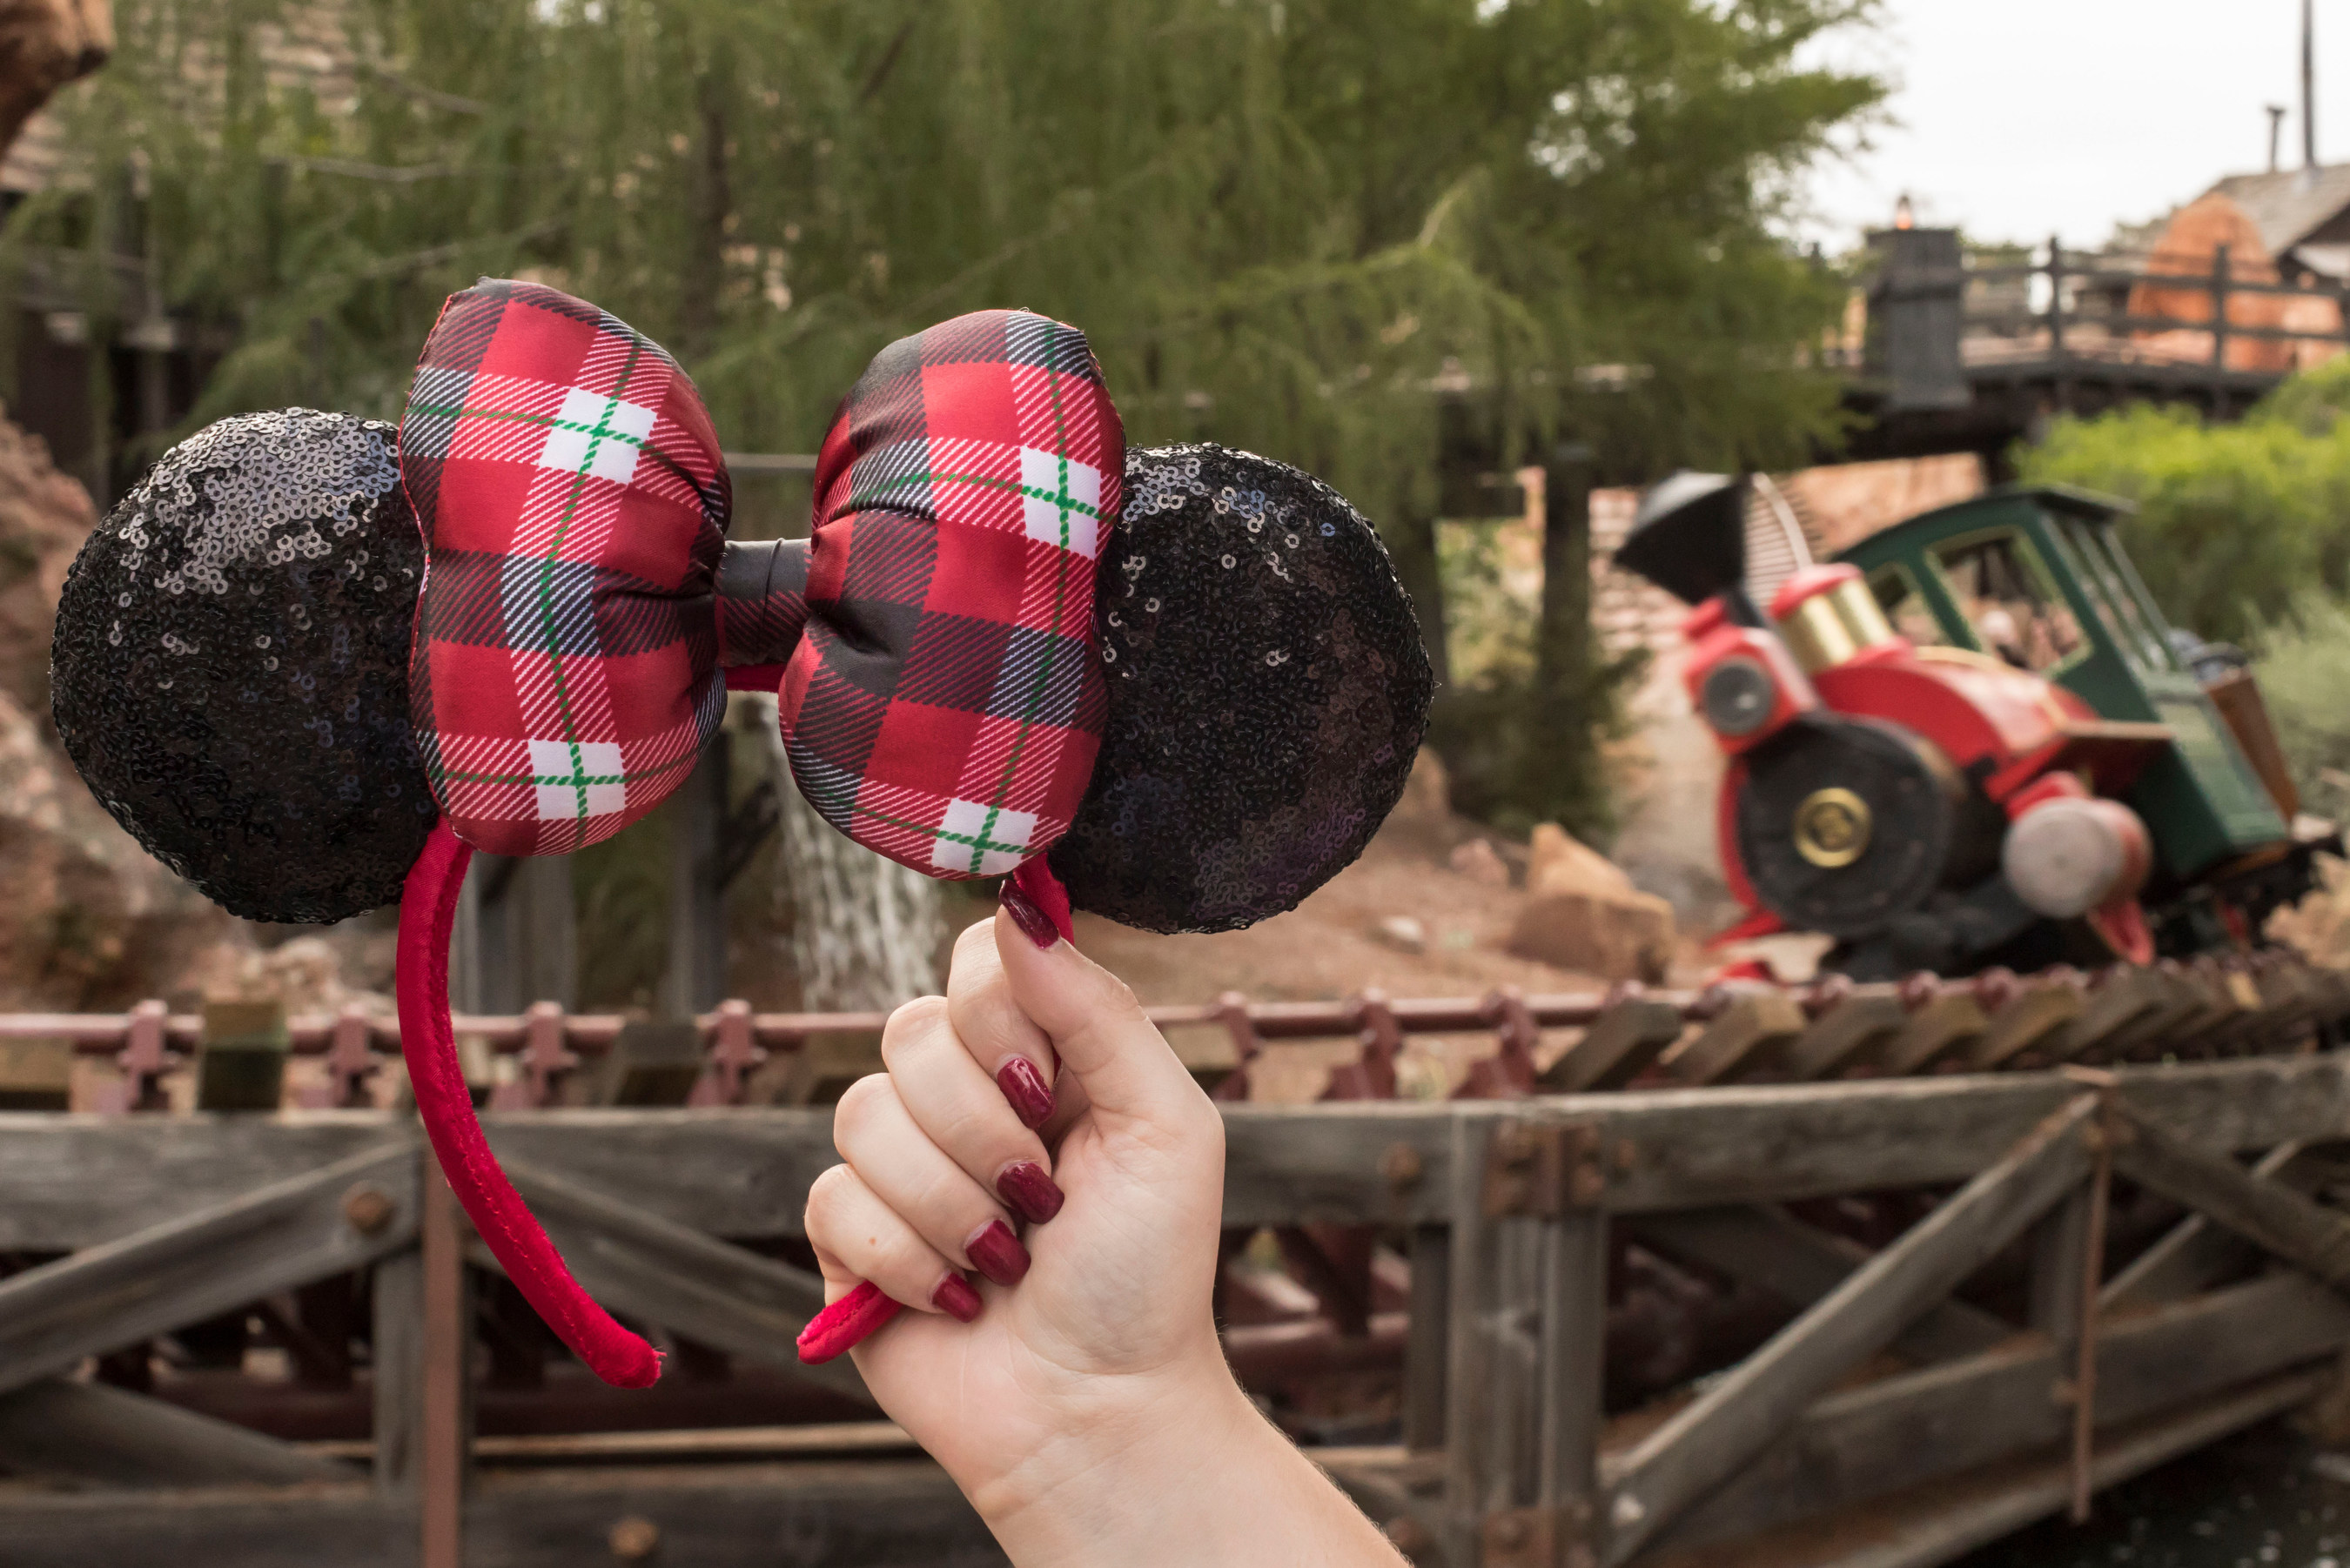 This pair of Minnie Mouse Plaid Bow Ears featuring sequin details is one of the three seasonal Minnie Ears designs found throughout Disneyland Resort in California and Walt Disney World Resort in Florida during the holiday season. (Joshua Sudock/Disneyland Resort)